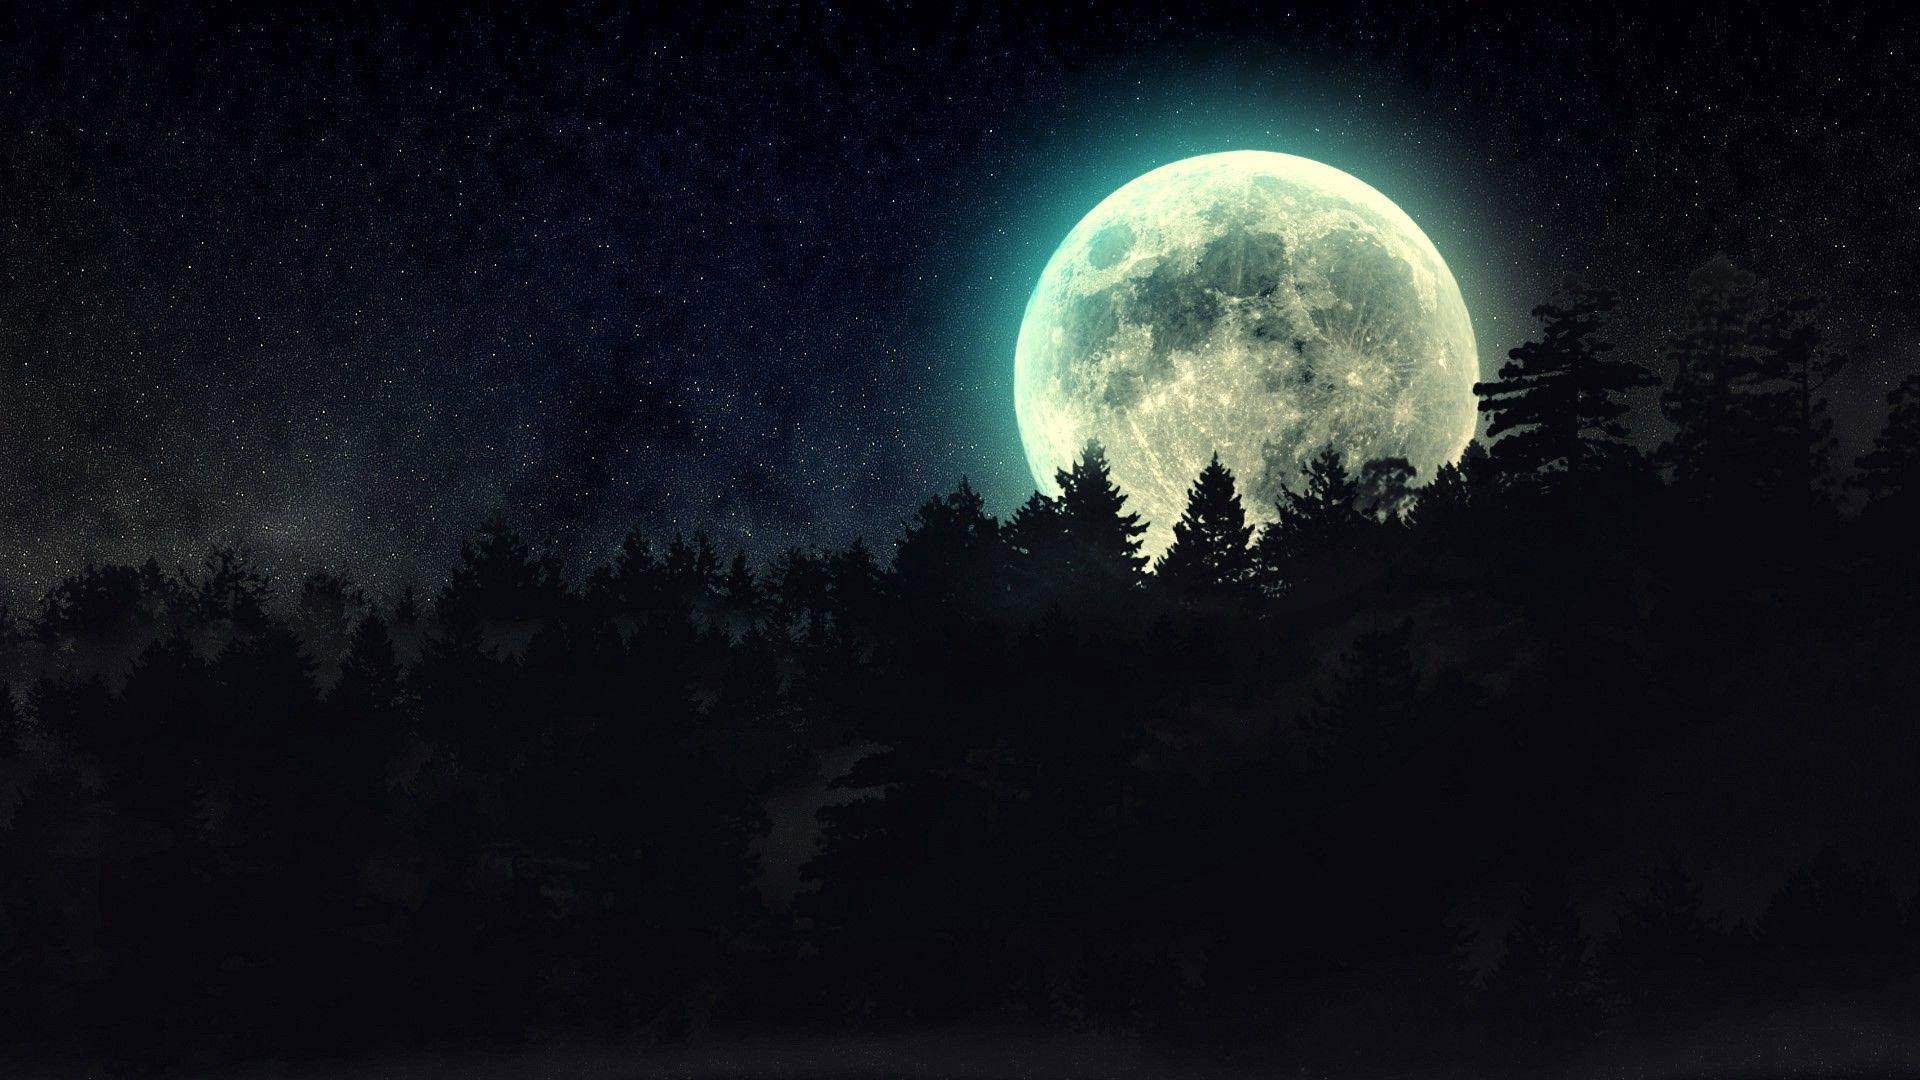 Best 43+ The Moon Wallpaper on HipWallpaper | Awesome Moon ...